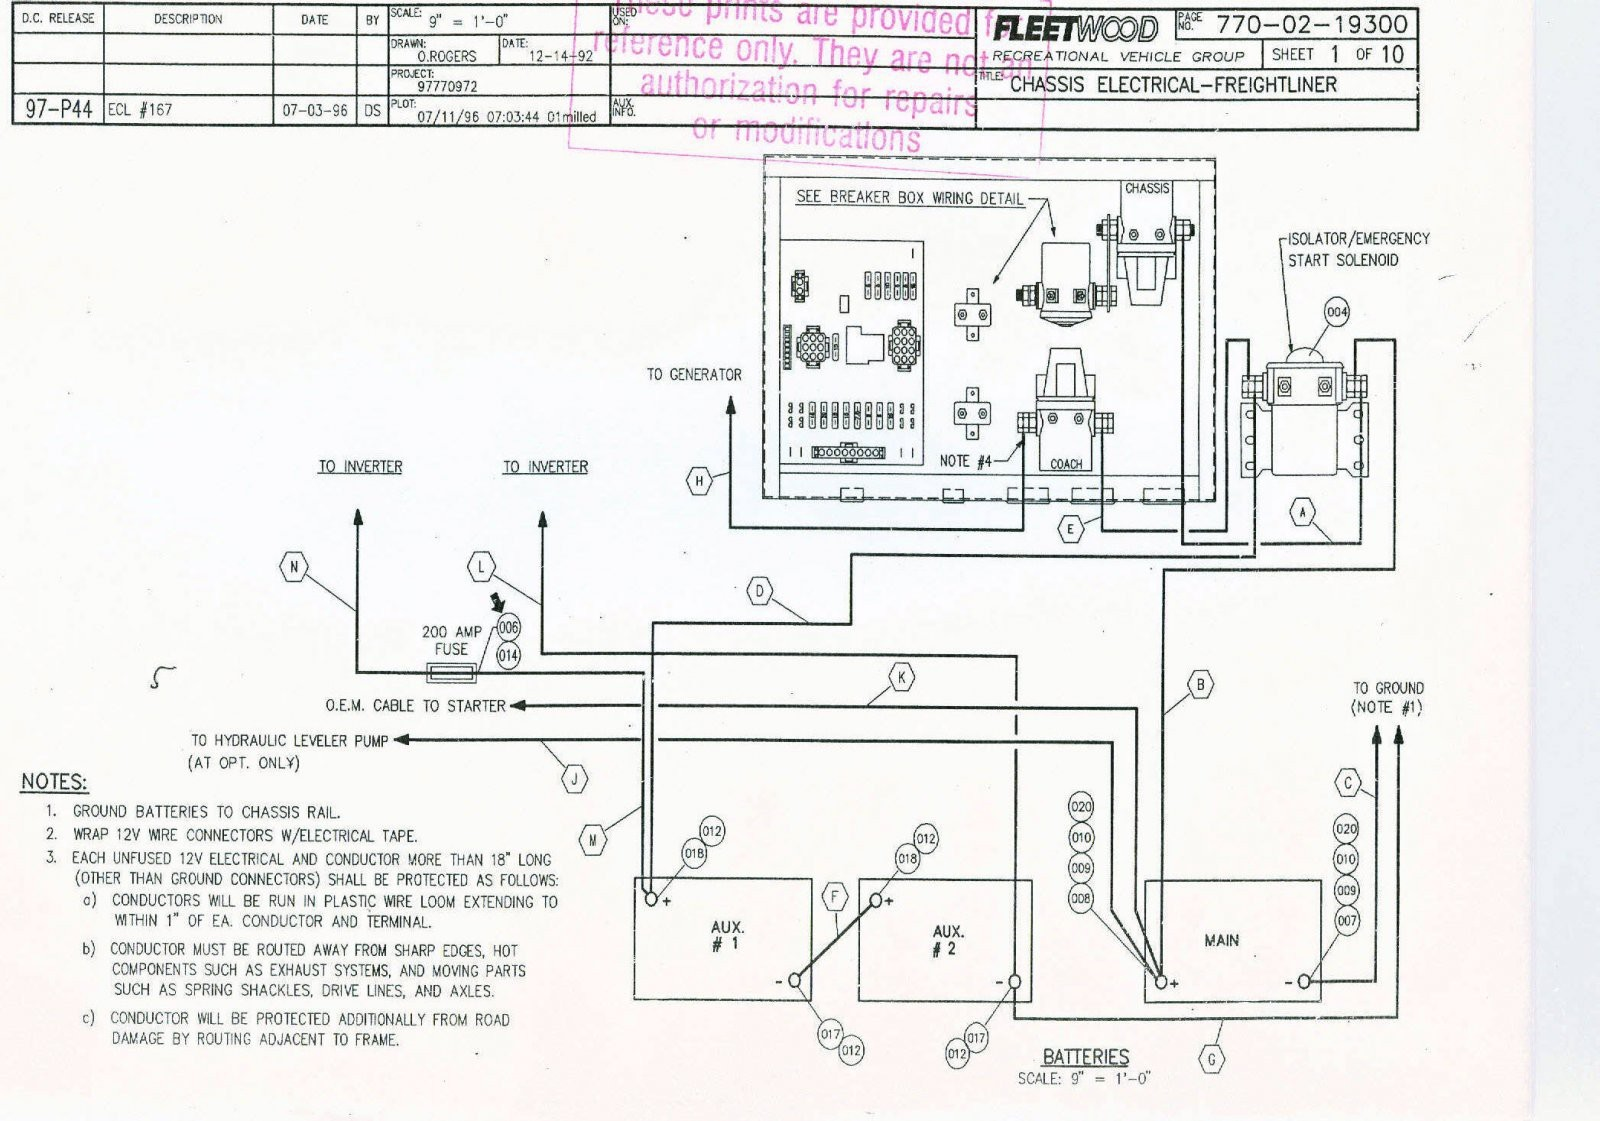 2004 fleetwood rv wiring diagram wiring diagram for light switch u2022 rh prestonfarmmotors co